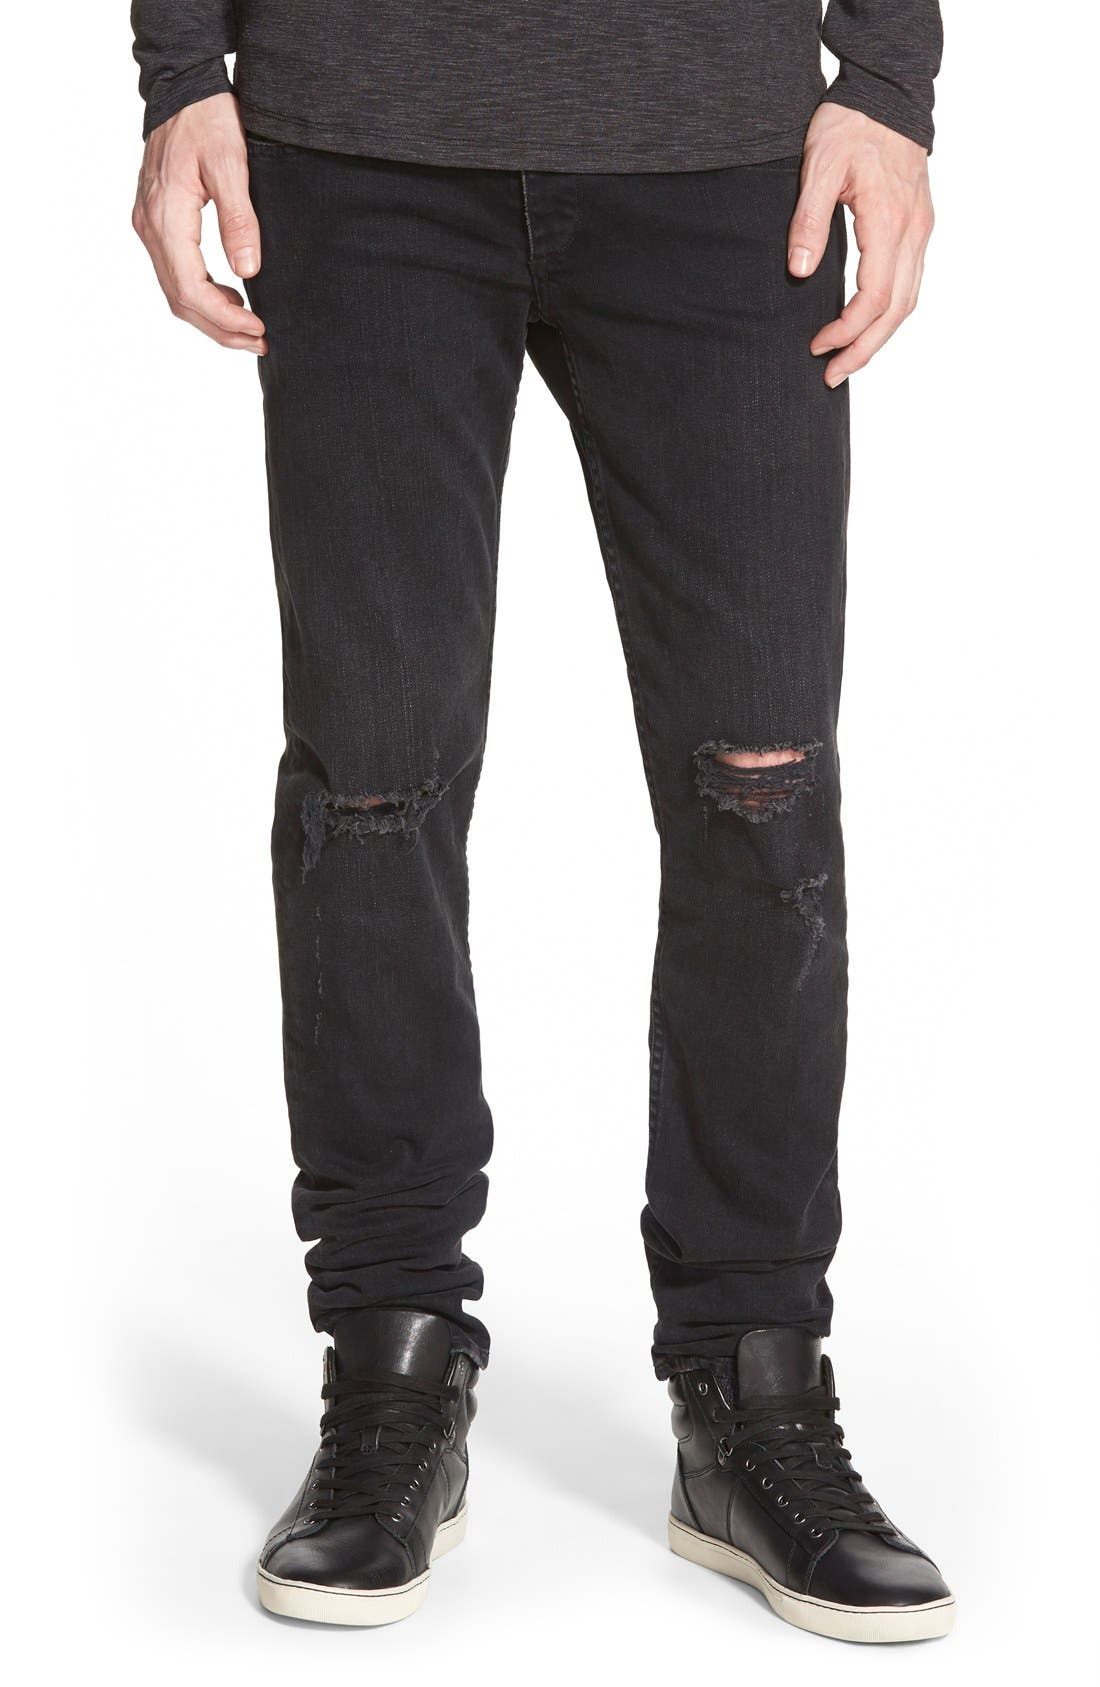 Alternate Image 1 Selected - rag & bone Standard Issue 'Fit 1' Skinny Fit Jeans (Rock with Holes)